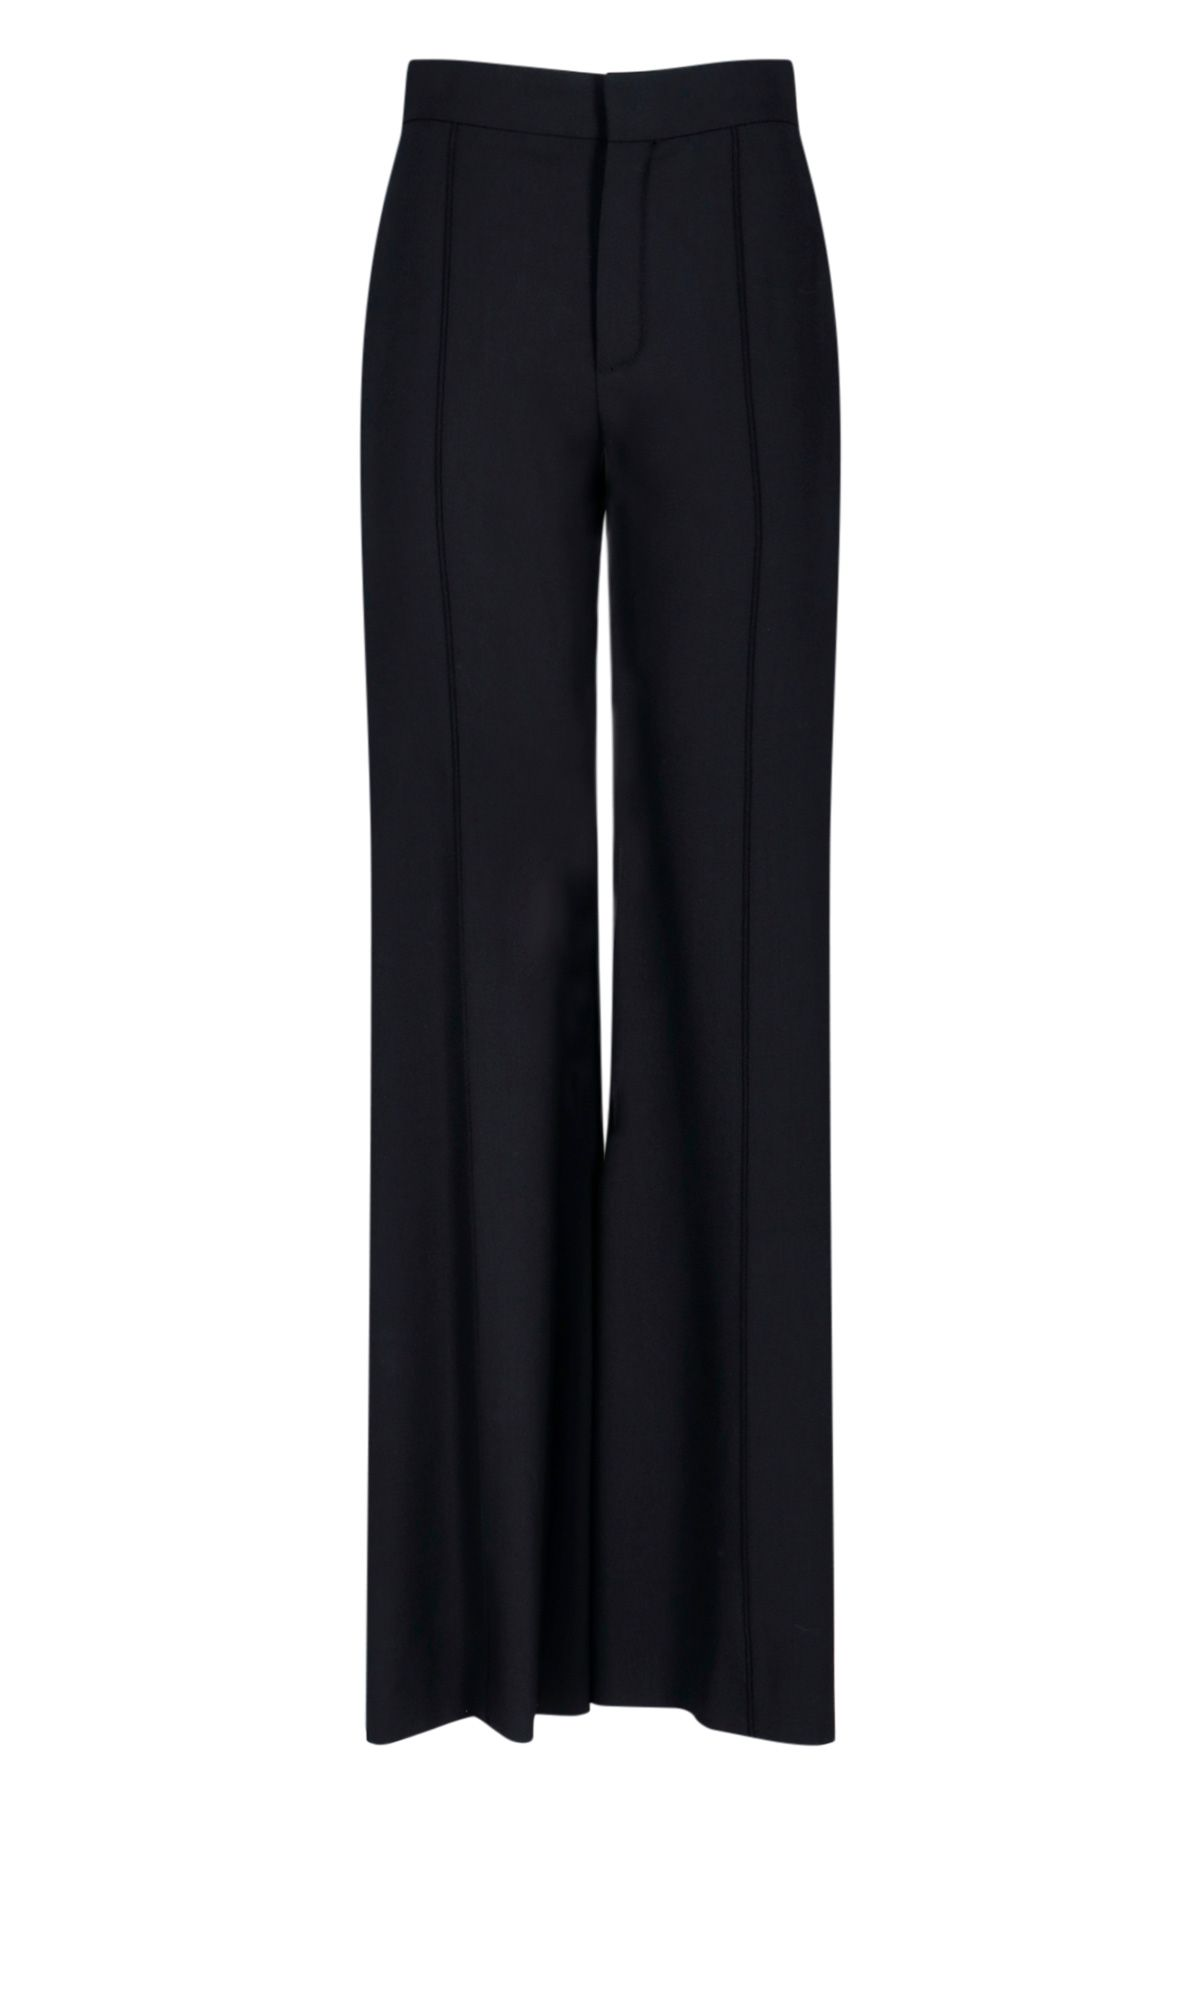 Chloé CHLOÉ WOMEN'S BLACK SYNTHETIC FIBERS PANTS